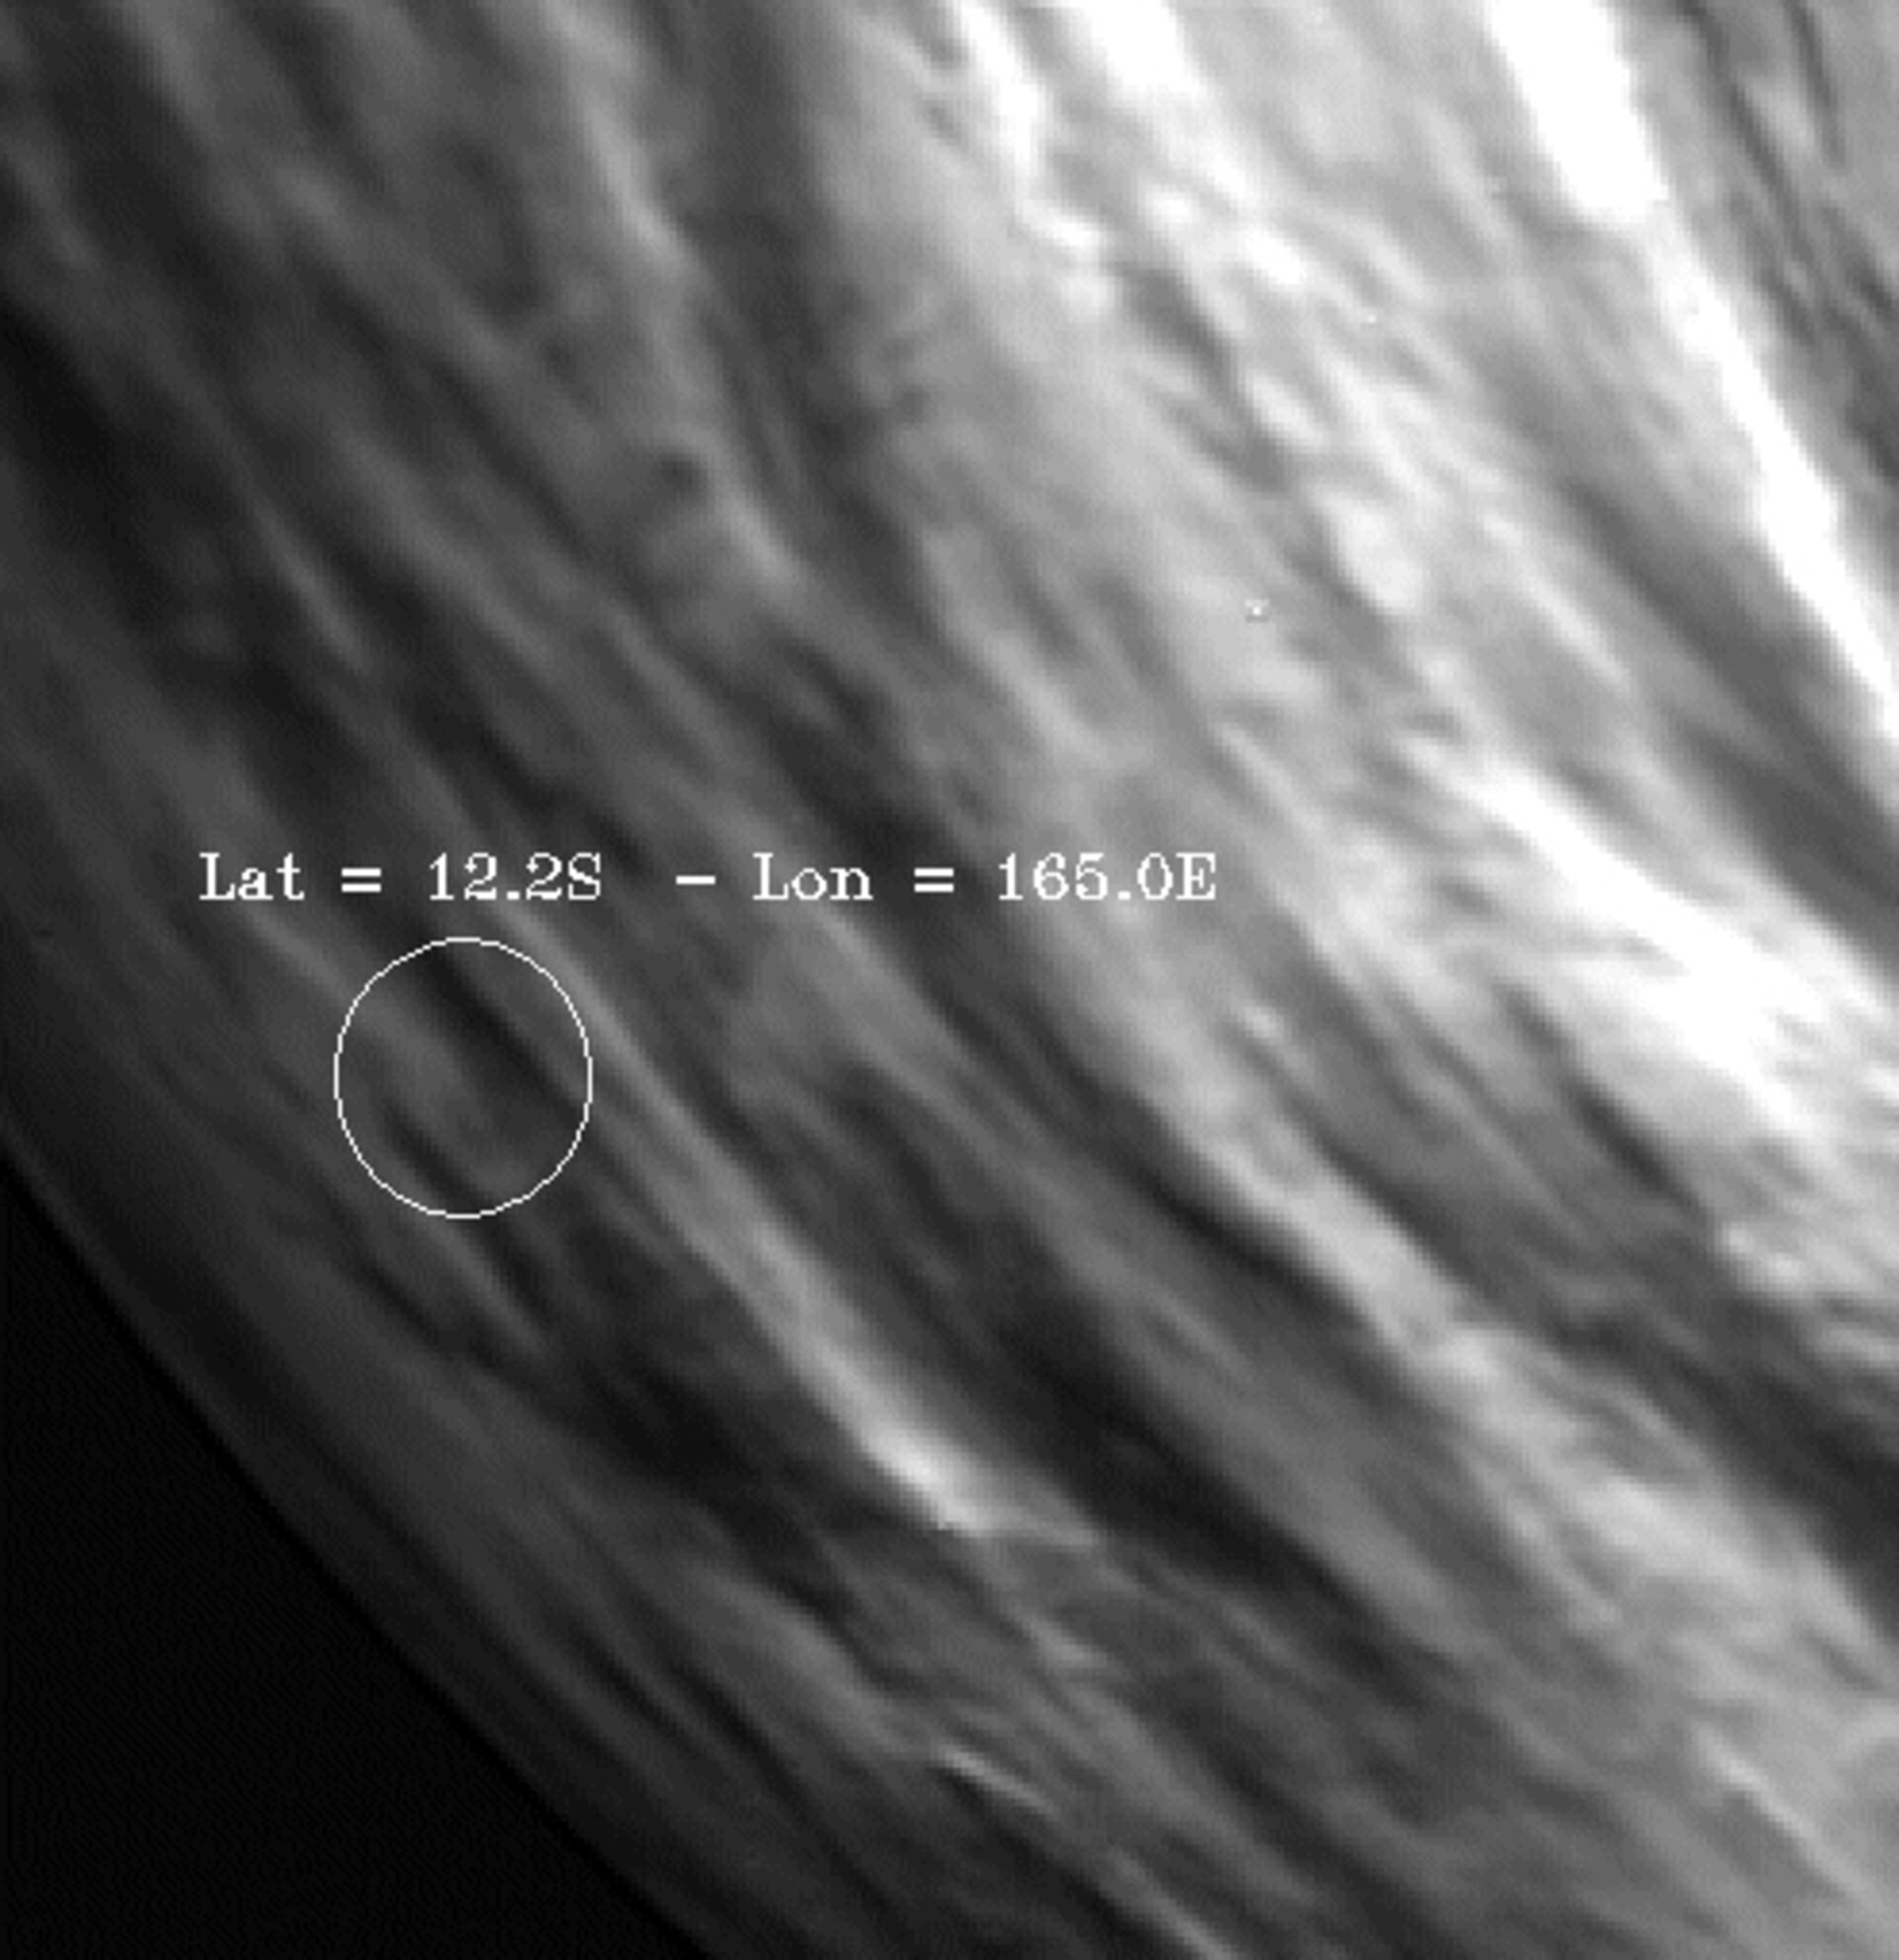 VIRTIS image of the area over flown by MESSENGER